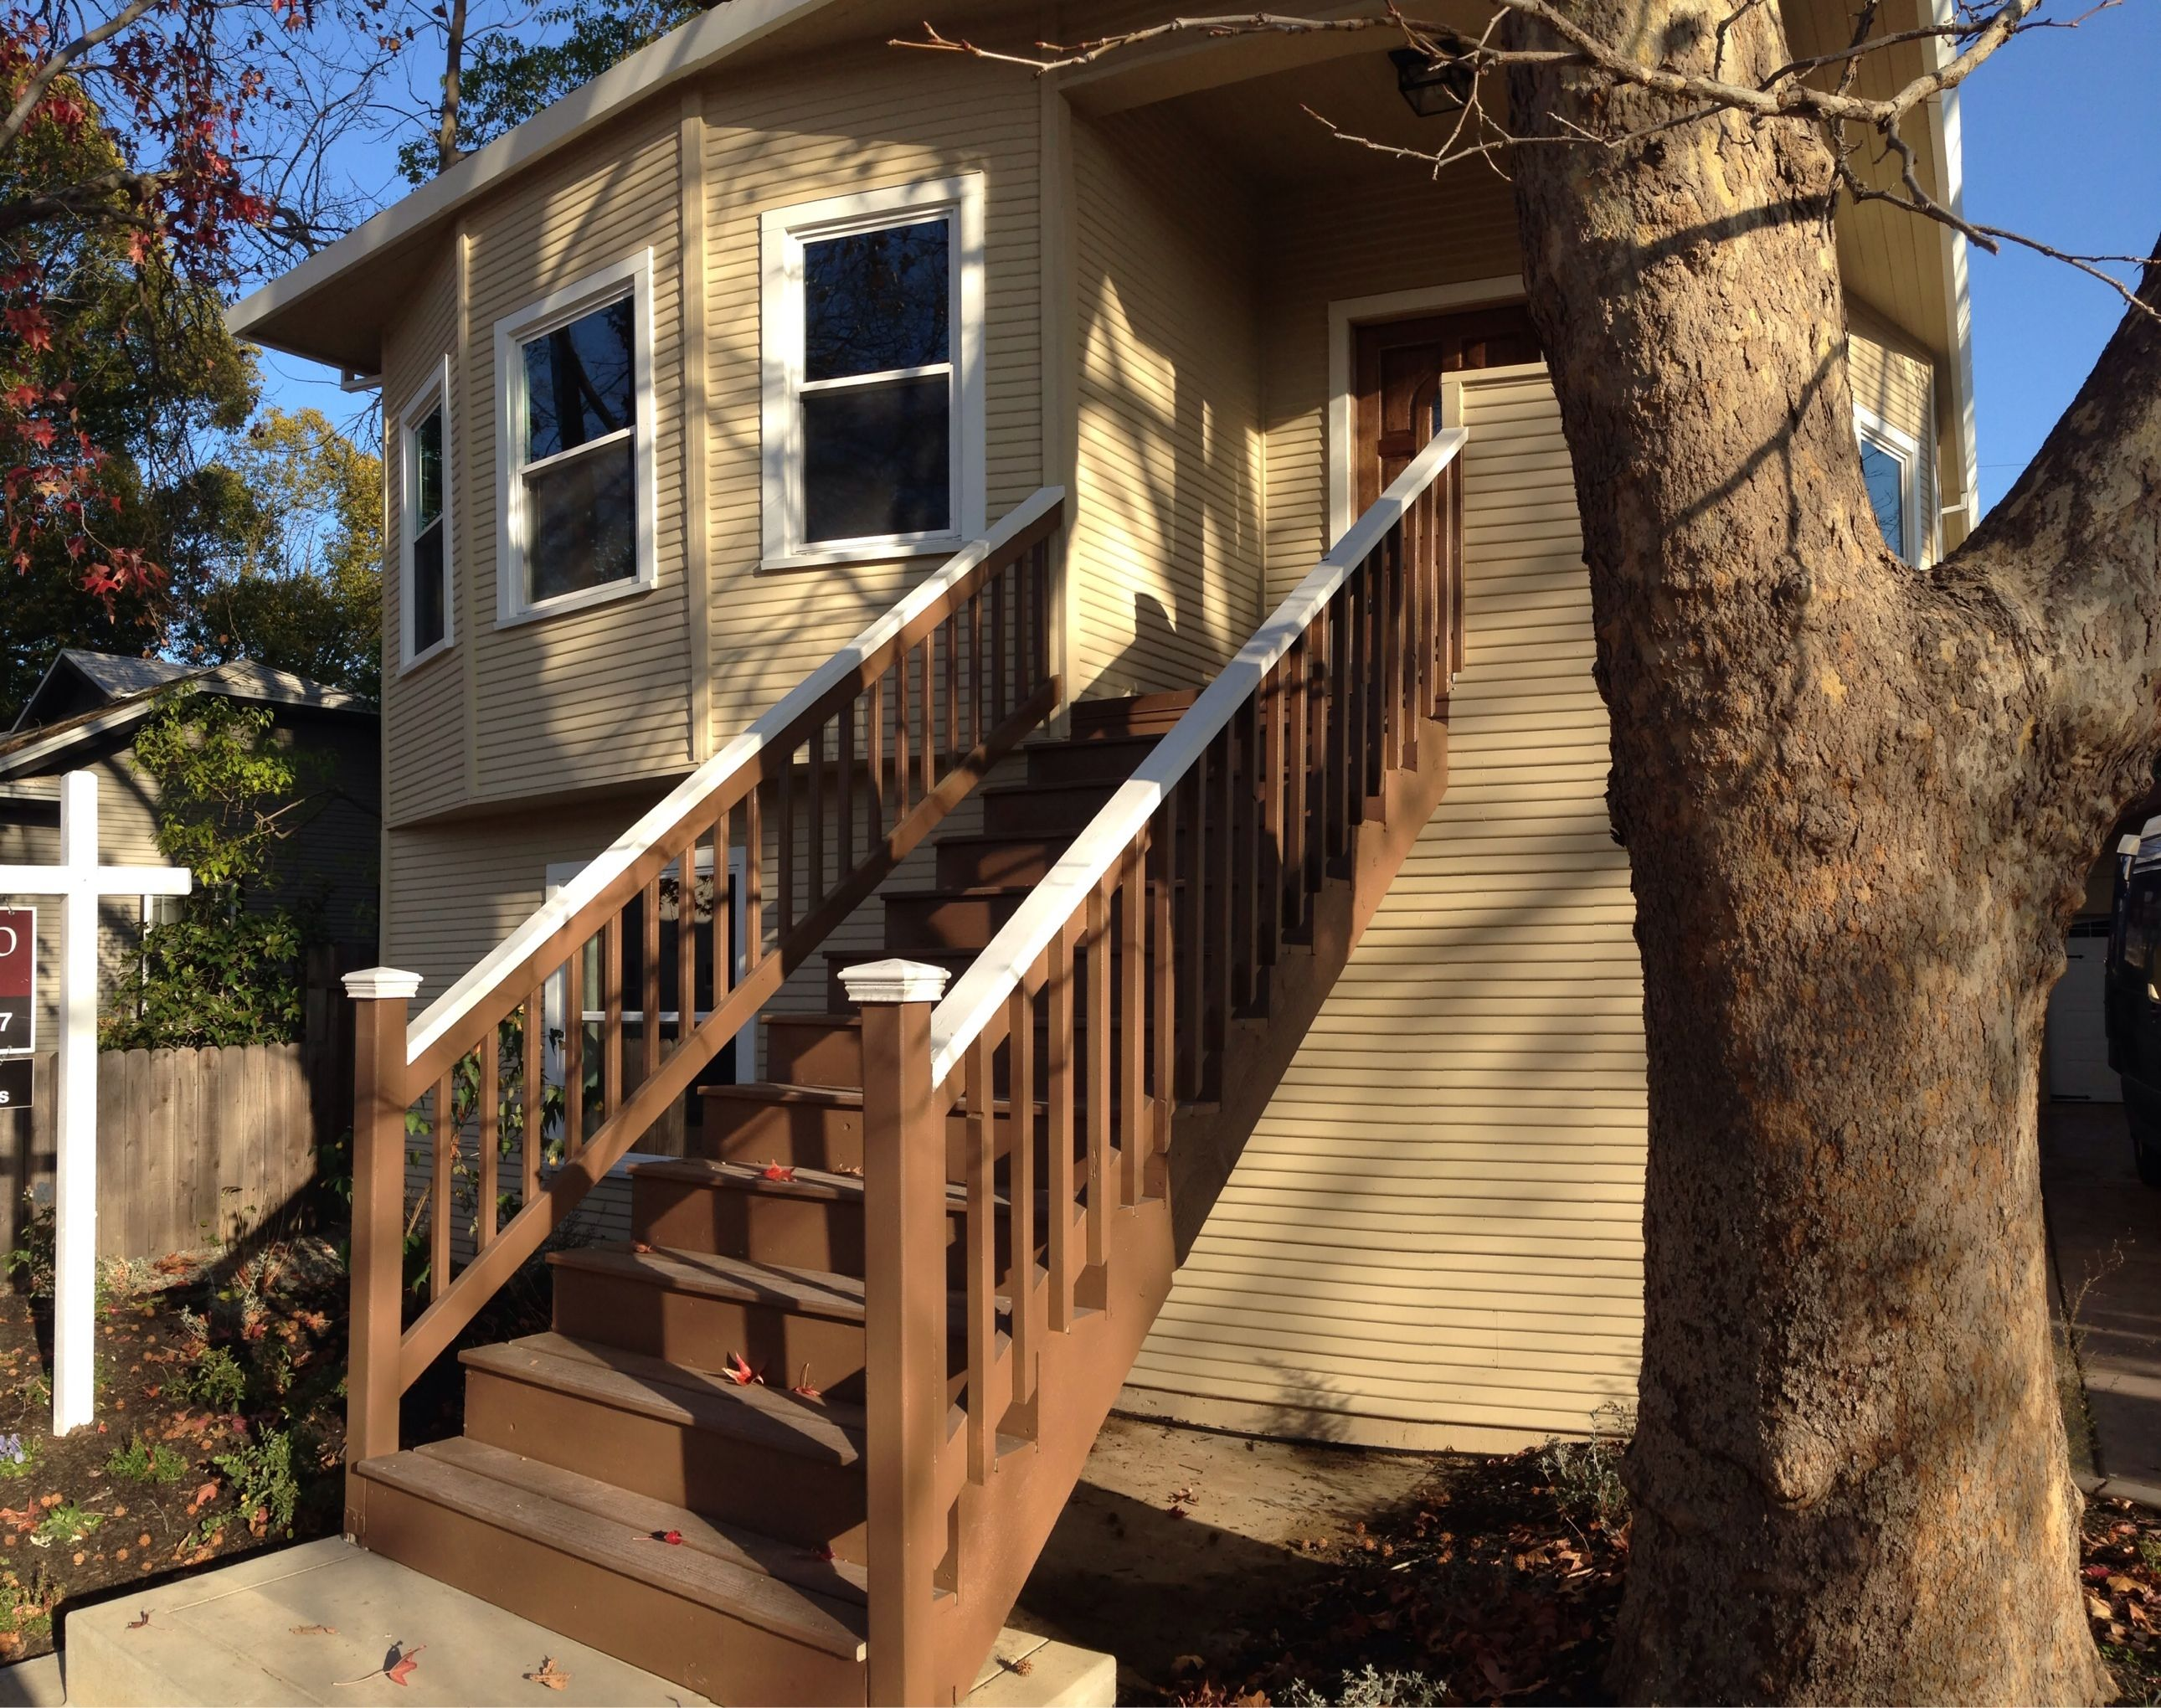 Remodeled in 2013, this charming high-water bungalow in east Sacramento has new foundation, new first floor framing, new stained concrete patio and driveway, new siding, new electrical wiring/panel, new plumbing, new roof!  4bed, 3bath.